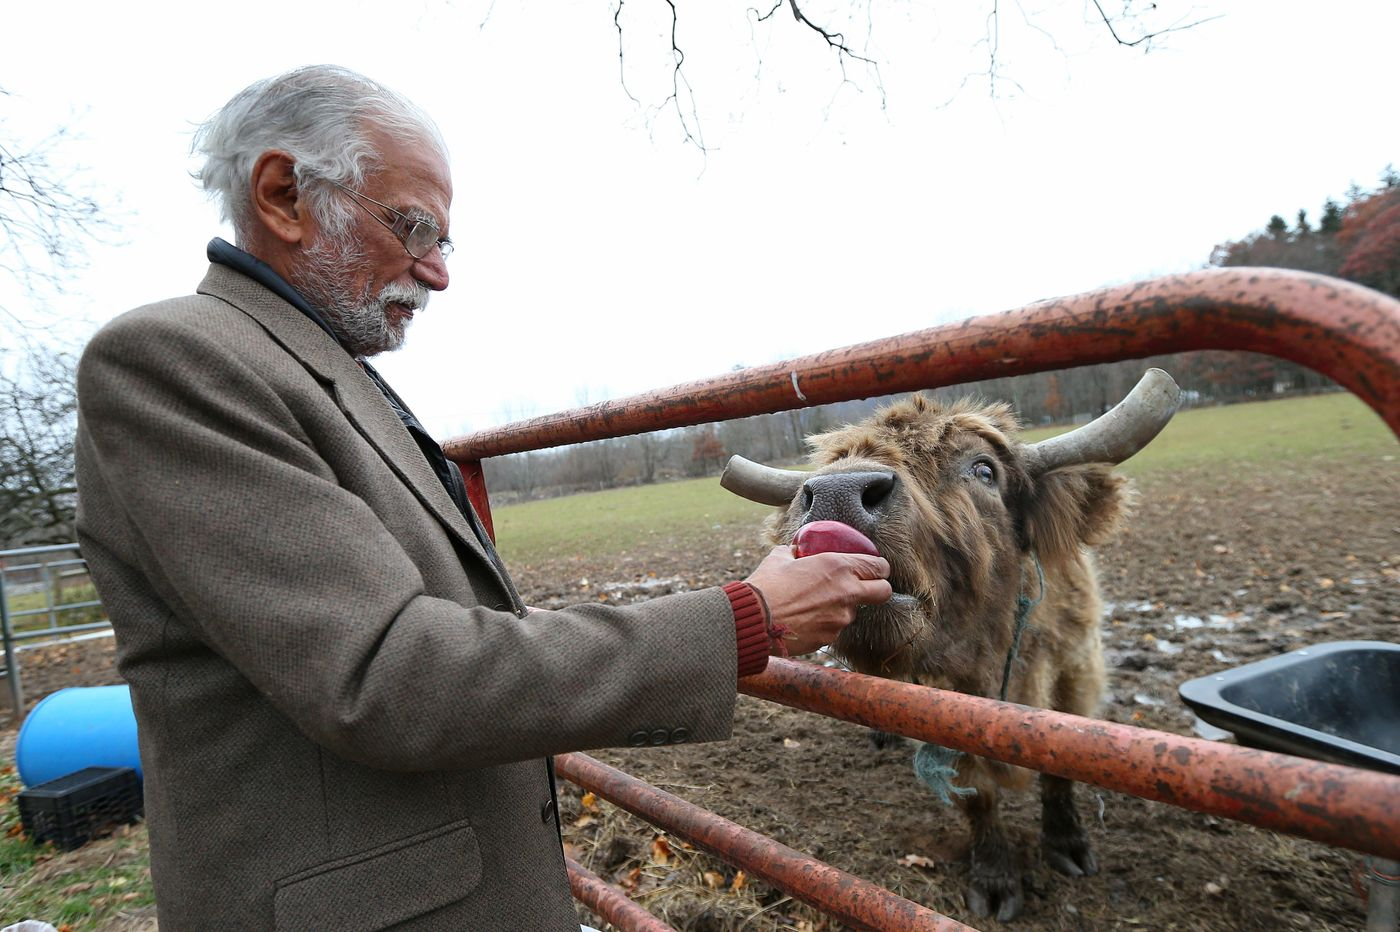 Why A Hindu Man Left Brooklyn to Start A Cow Sanctuary in Pennsylvania